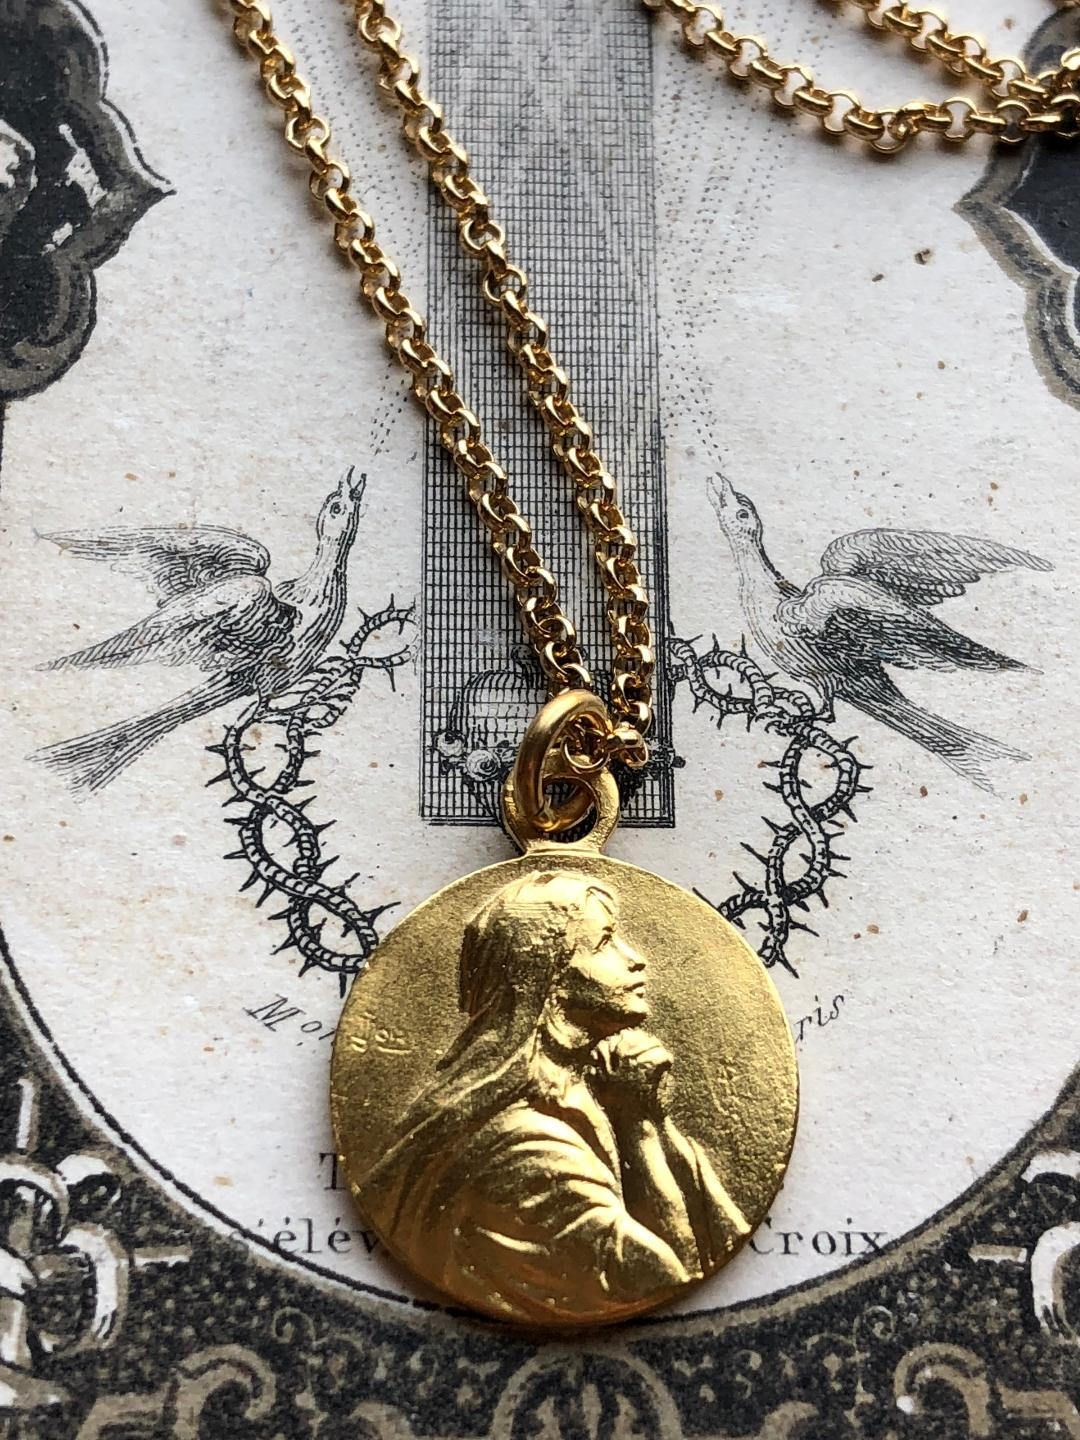 Small vintage french 18k gold plated silver saint mary magdalene small vintage french 18k gold plated silver saint mary magdalene medal pendant necklace catholic jewelry religious mozeypictures Gallery